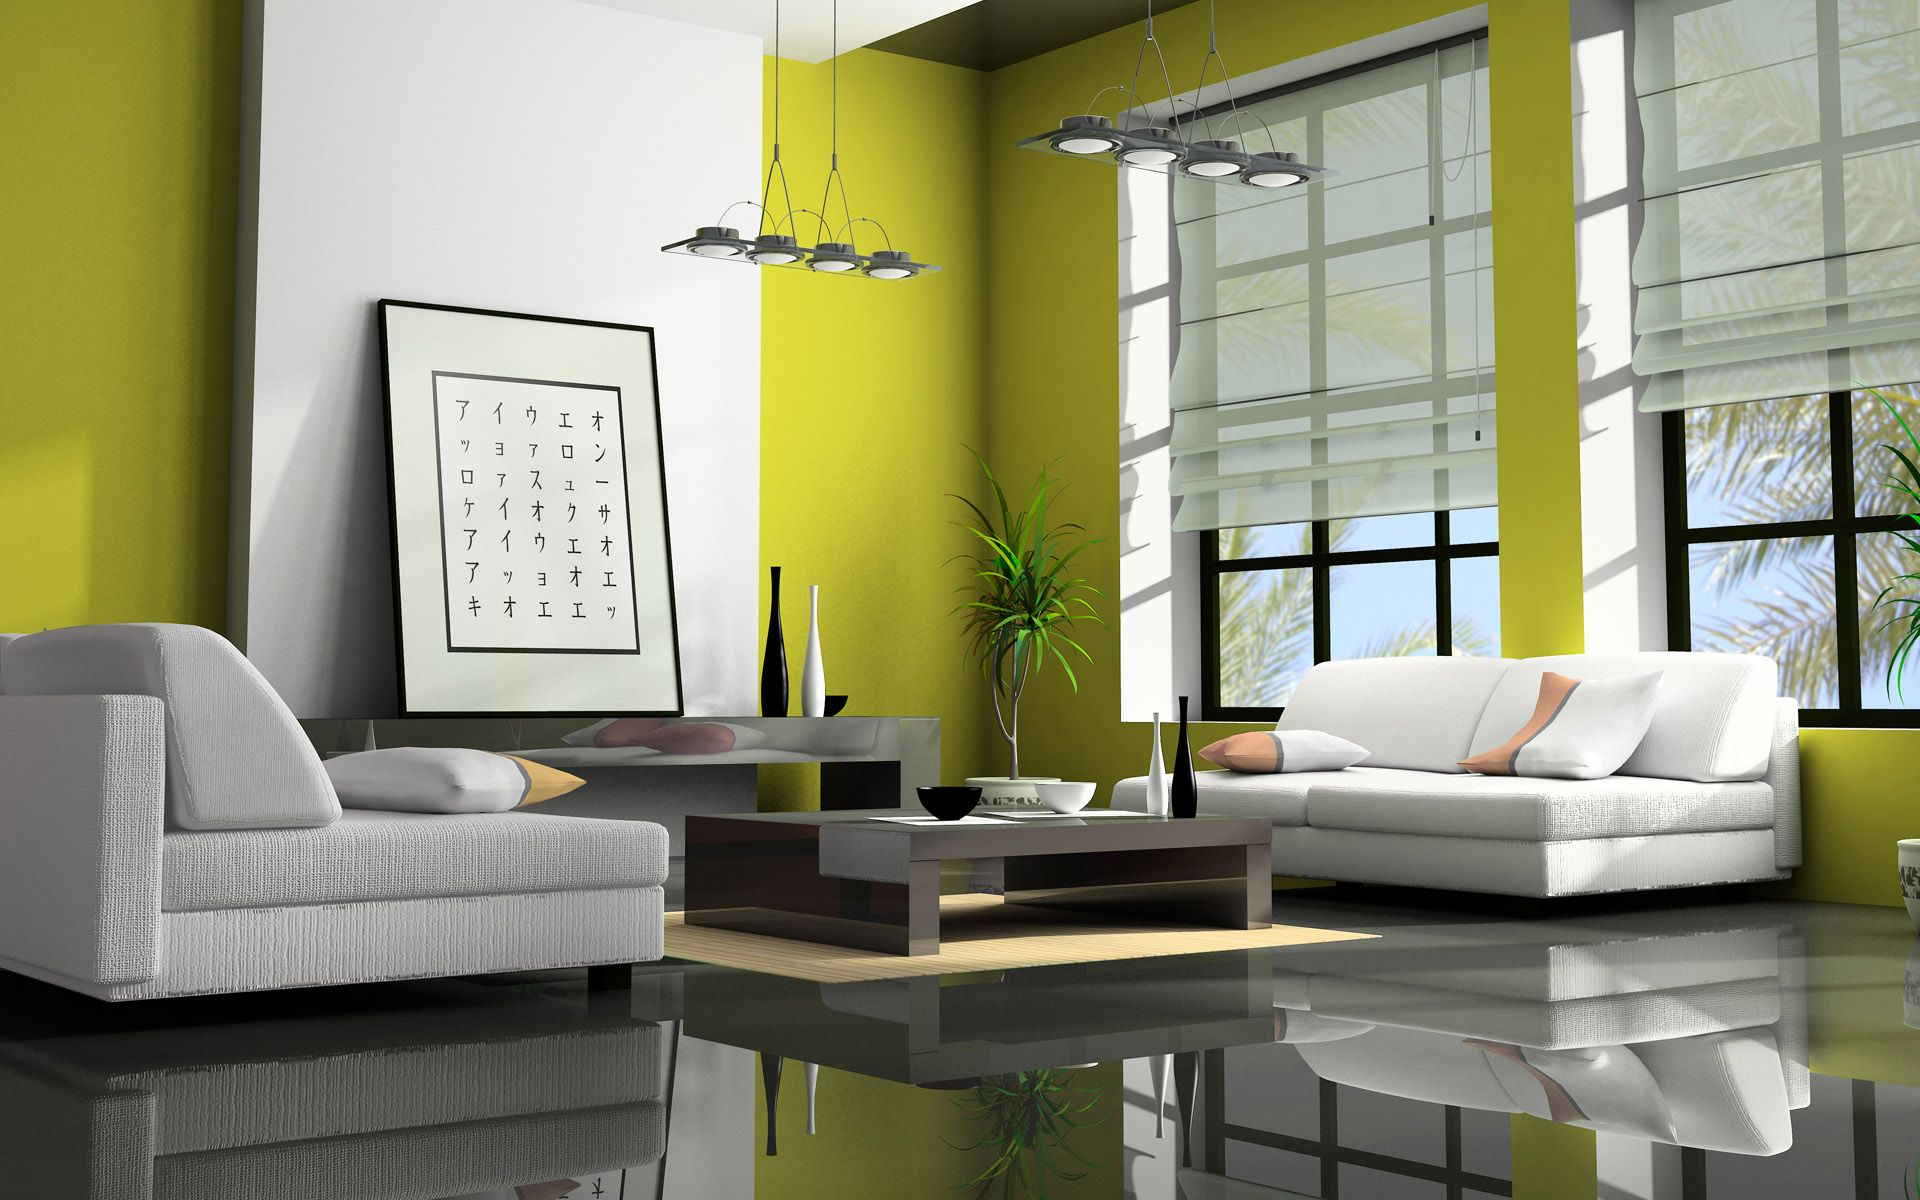 Living Room Design Program Captivating Diseño De Interiores Arquitectura  Room Design Software Living Decorating Design